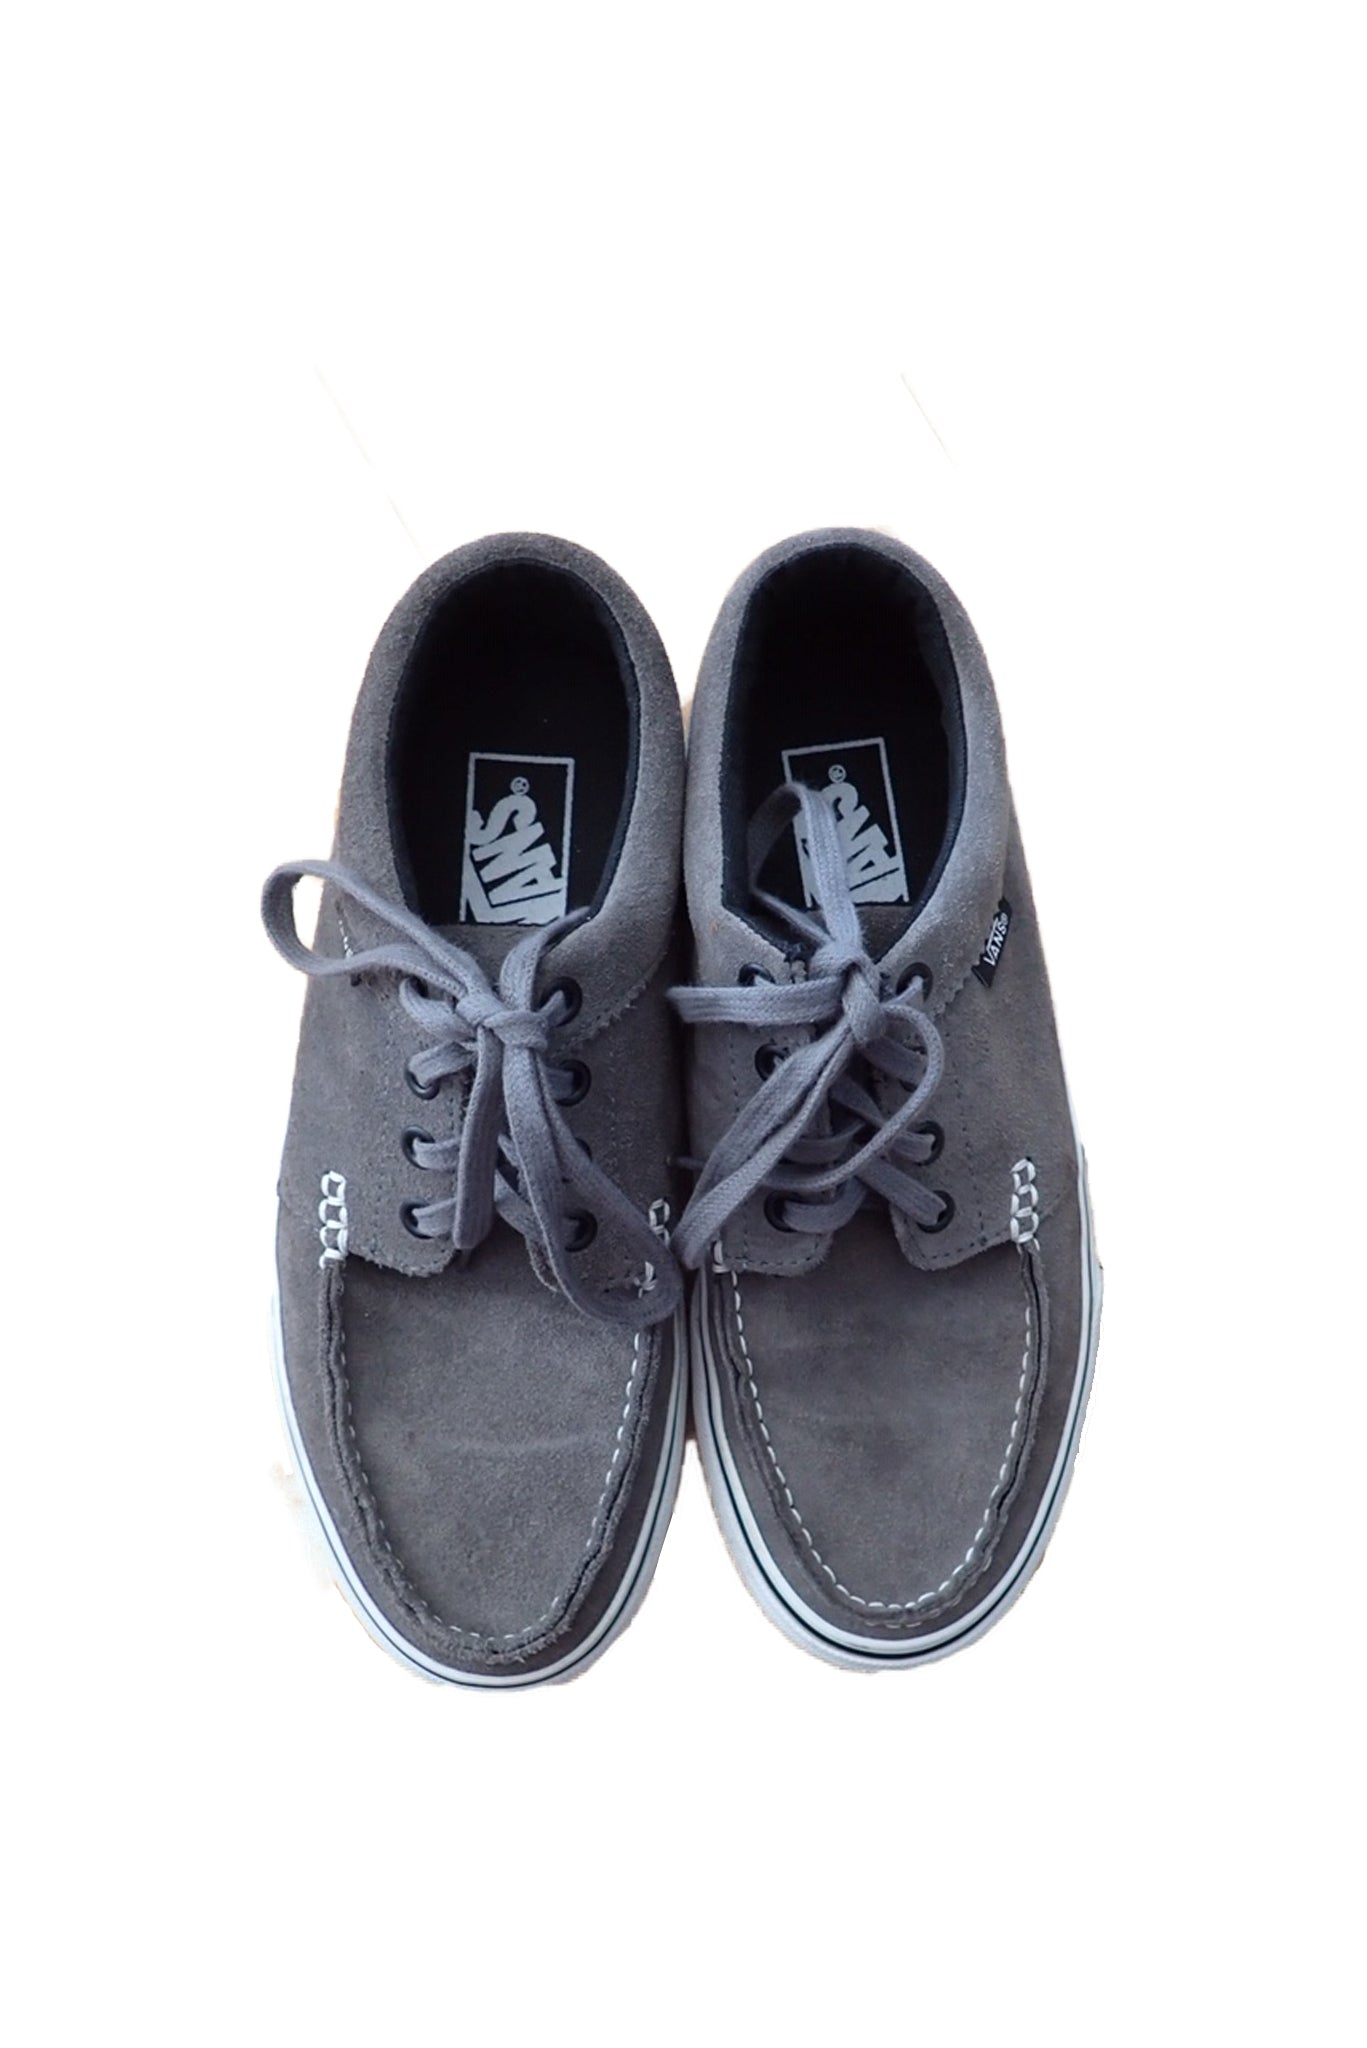 Grey unisex pre-owned Vans loafers.